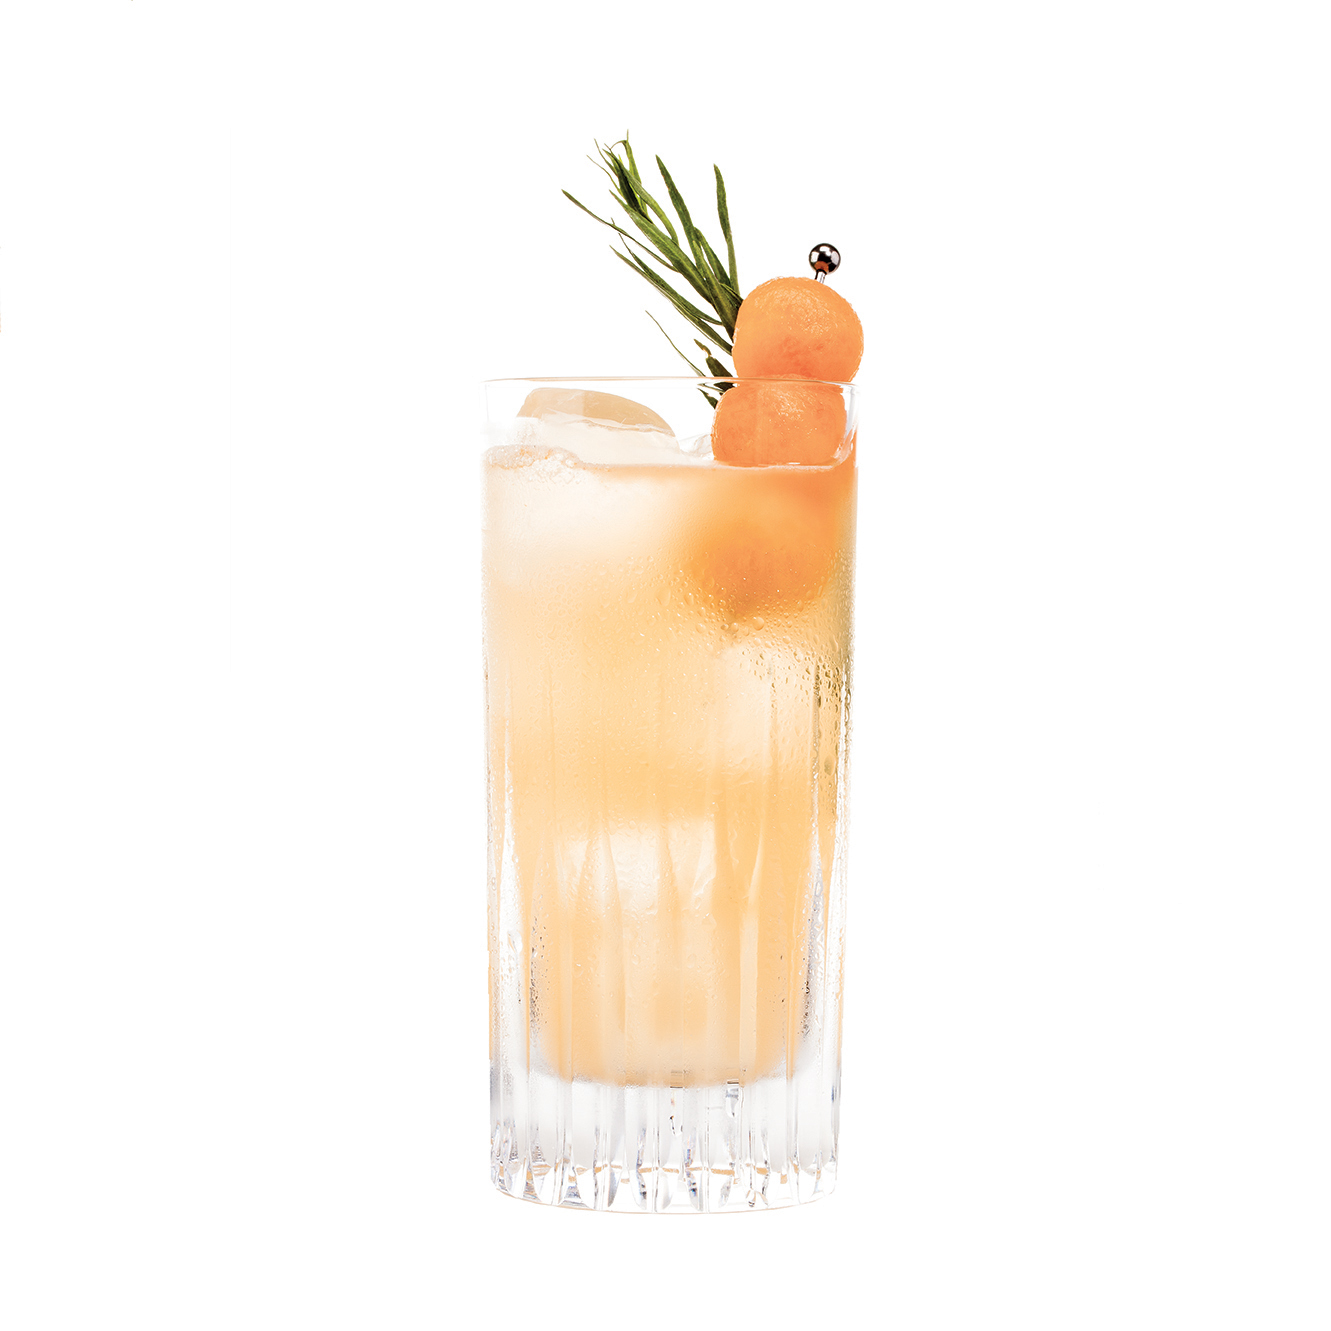 CAN'T ELOPE - 1 part KLEOS Mastiha Spirit1 part vodka1⁄2 part simple syrup1⁄4 part fresh lemon juice1⁄4 part fresh lime juice6 fresh tarragon leaves4 1-inch cubes of cantaloupeMuddle cantaloupe with tarragon.Shake all ingredients vigorously and double strain over ice into a highball glass.Garnish with a tarragon sprig and cantaloupe balls.                           When you're Greek-American, and you can't elope....but you can swig a few of these at your big fat Greek wedding. (Great frozen)